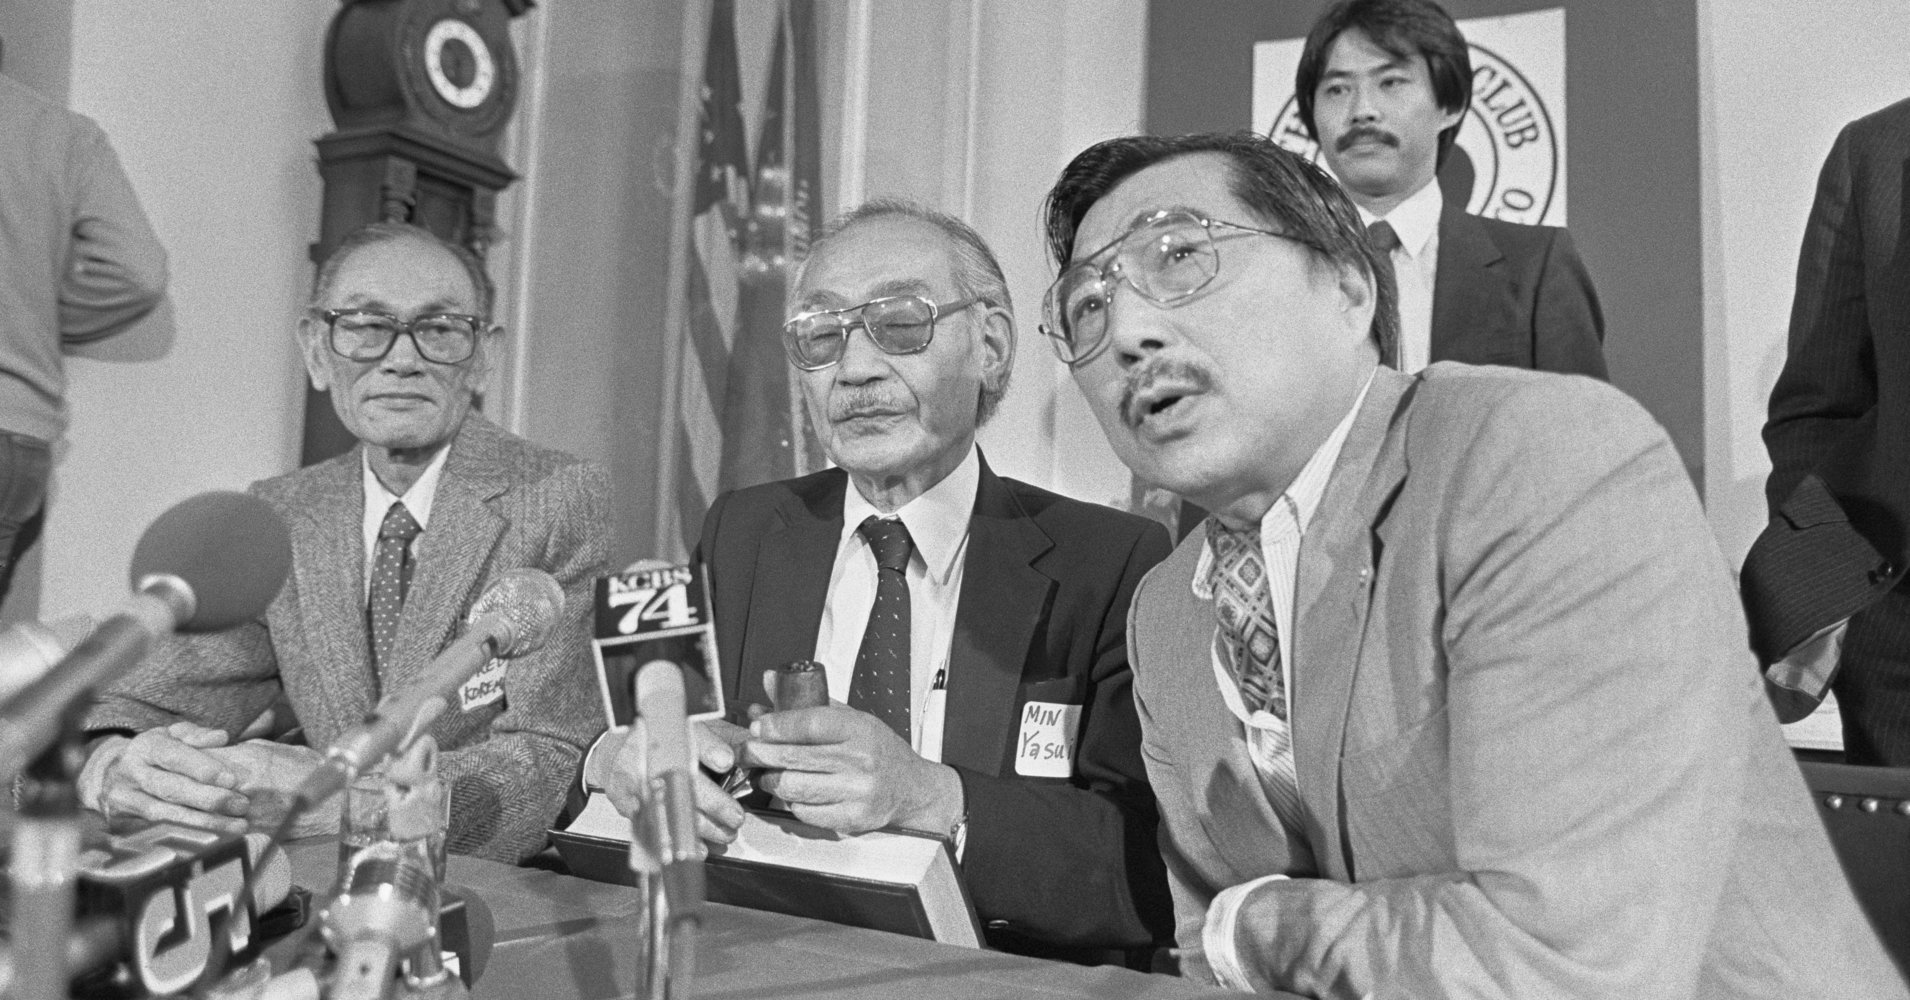 Families of Japanese-American civil rights leaders join legal fight against travel ban https://t.co/F4enBR9usS https://t.co/Bfv84fGS0D